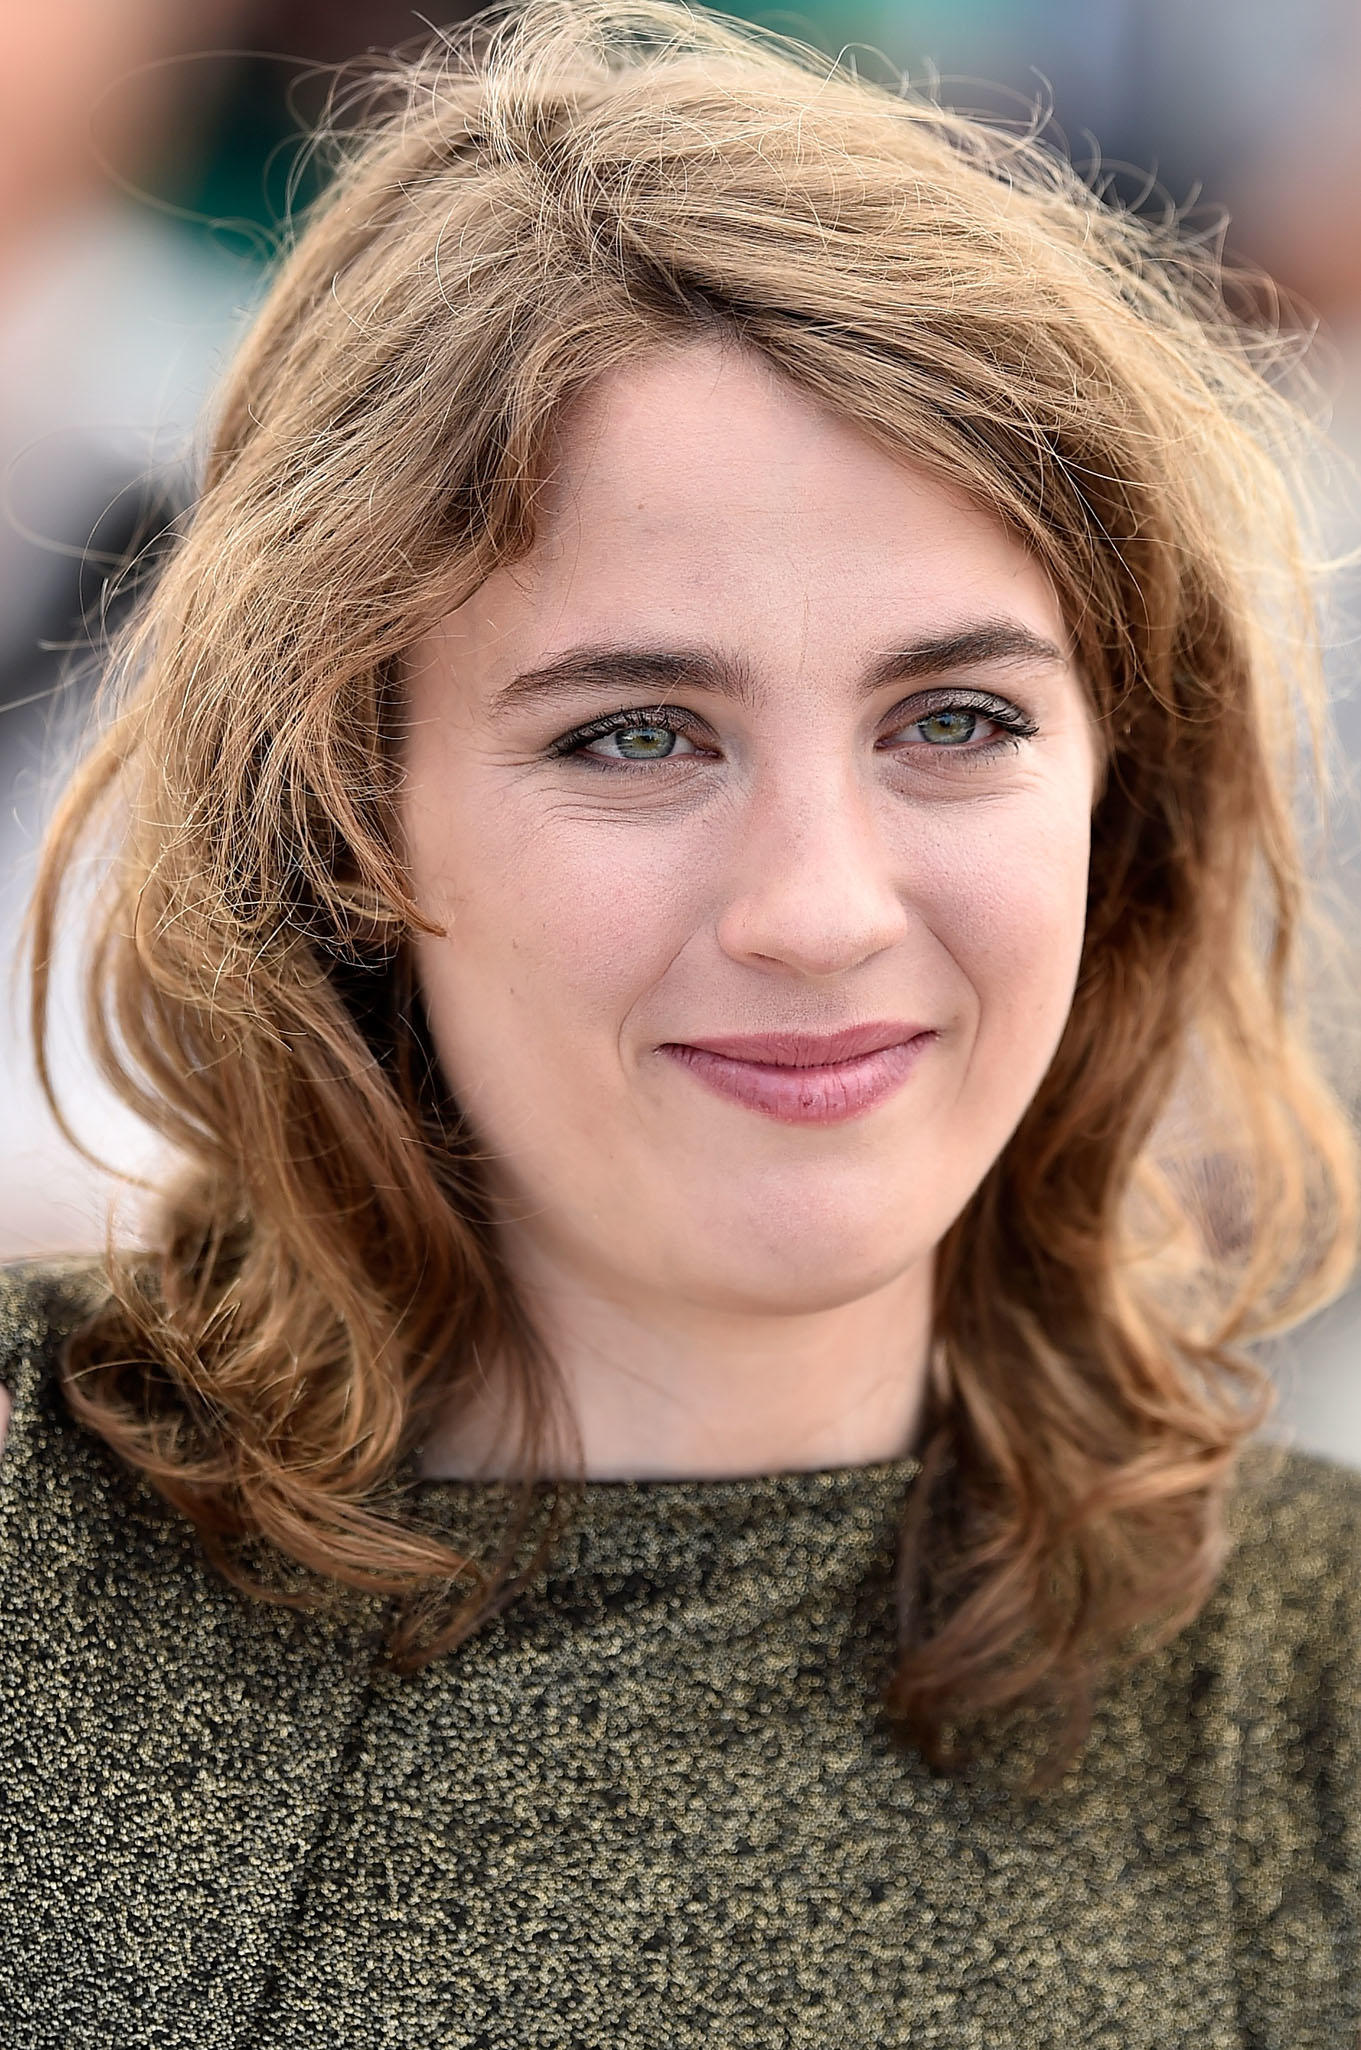 Cleavage Adele Haenel  nudes (51 photos), Twitter, bra